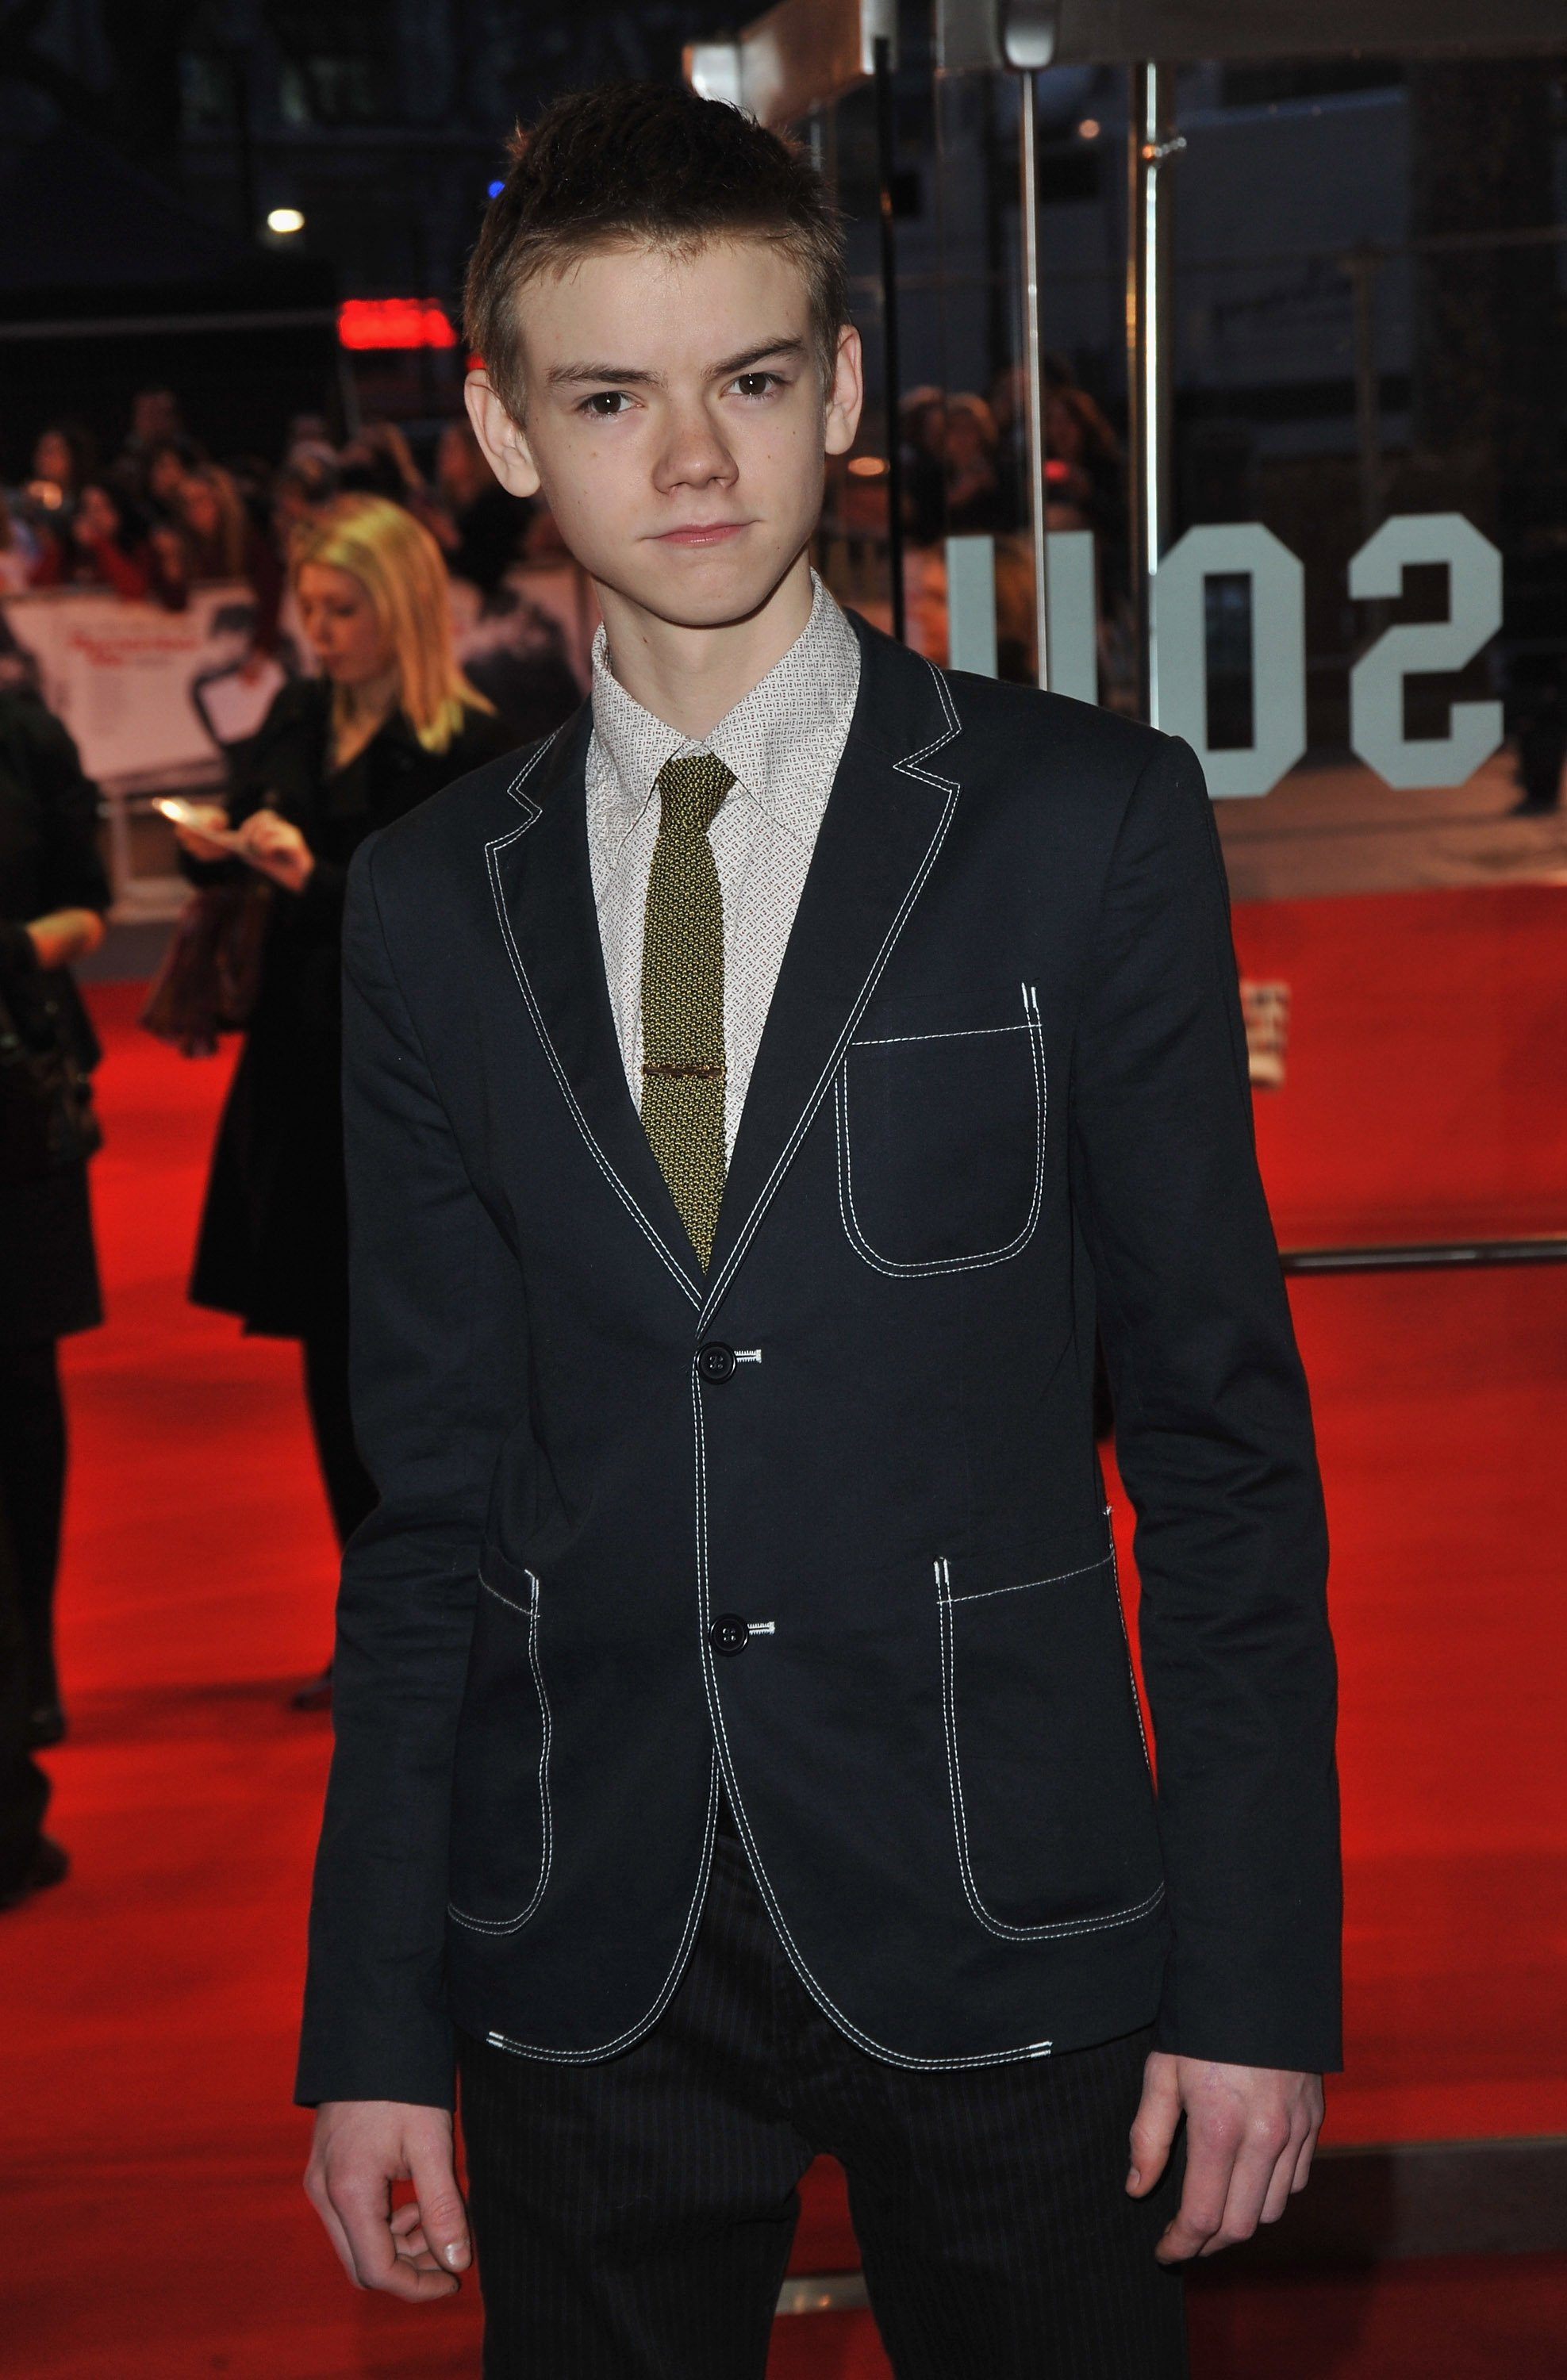 Thomas Sangster attends the 'Remember Me' film premiere at the Odeon Leicester Square on March 17, 2010 | Photo: Getty Images